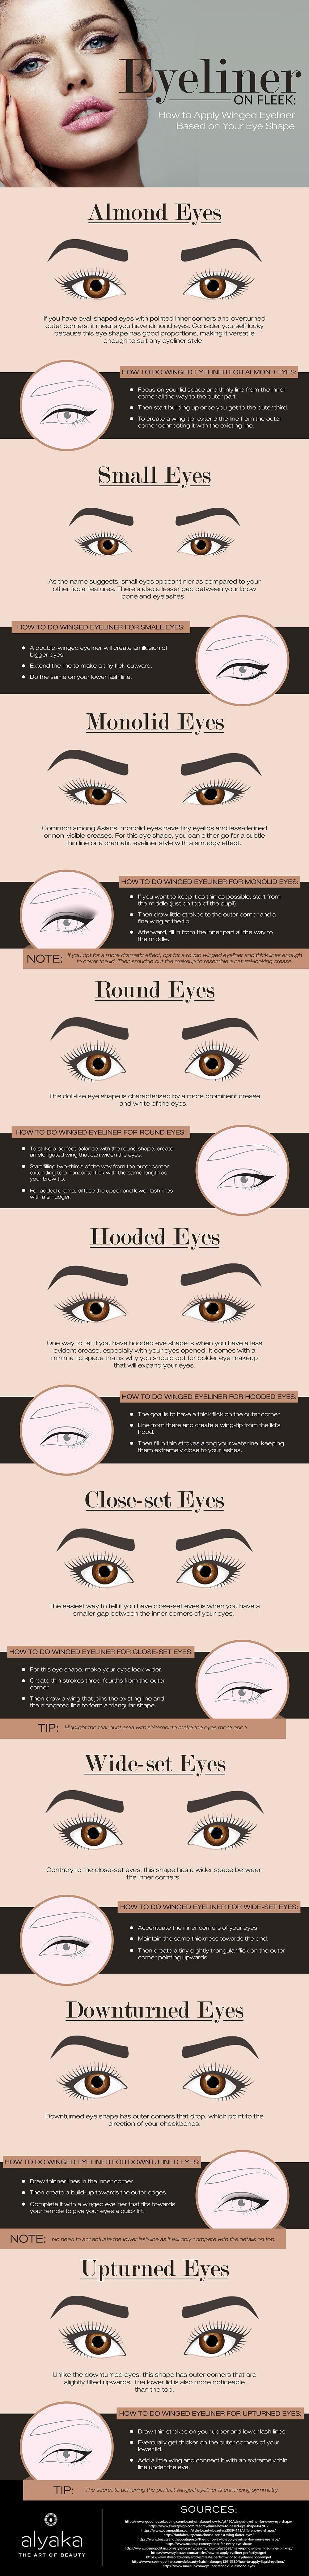 Eye Makeup Basics: How to Do Winged Eyeliner for Different Eye Shapes #infographic